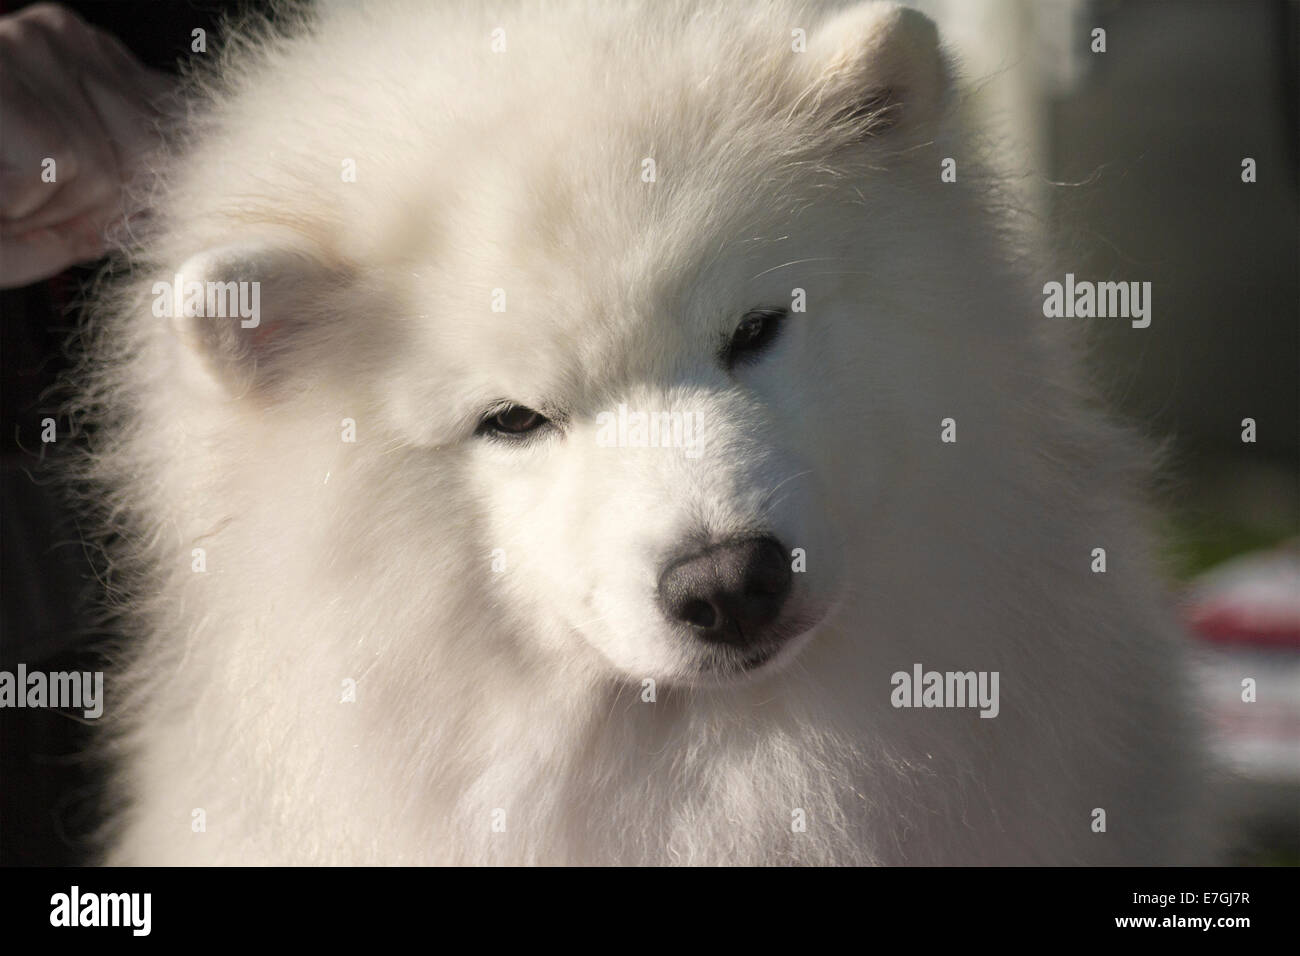 Close up of Samoyed dog being prepared for its' class at a local dog show with his head cocked to the side - Stock Image